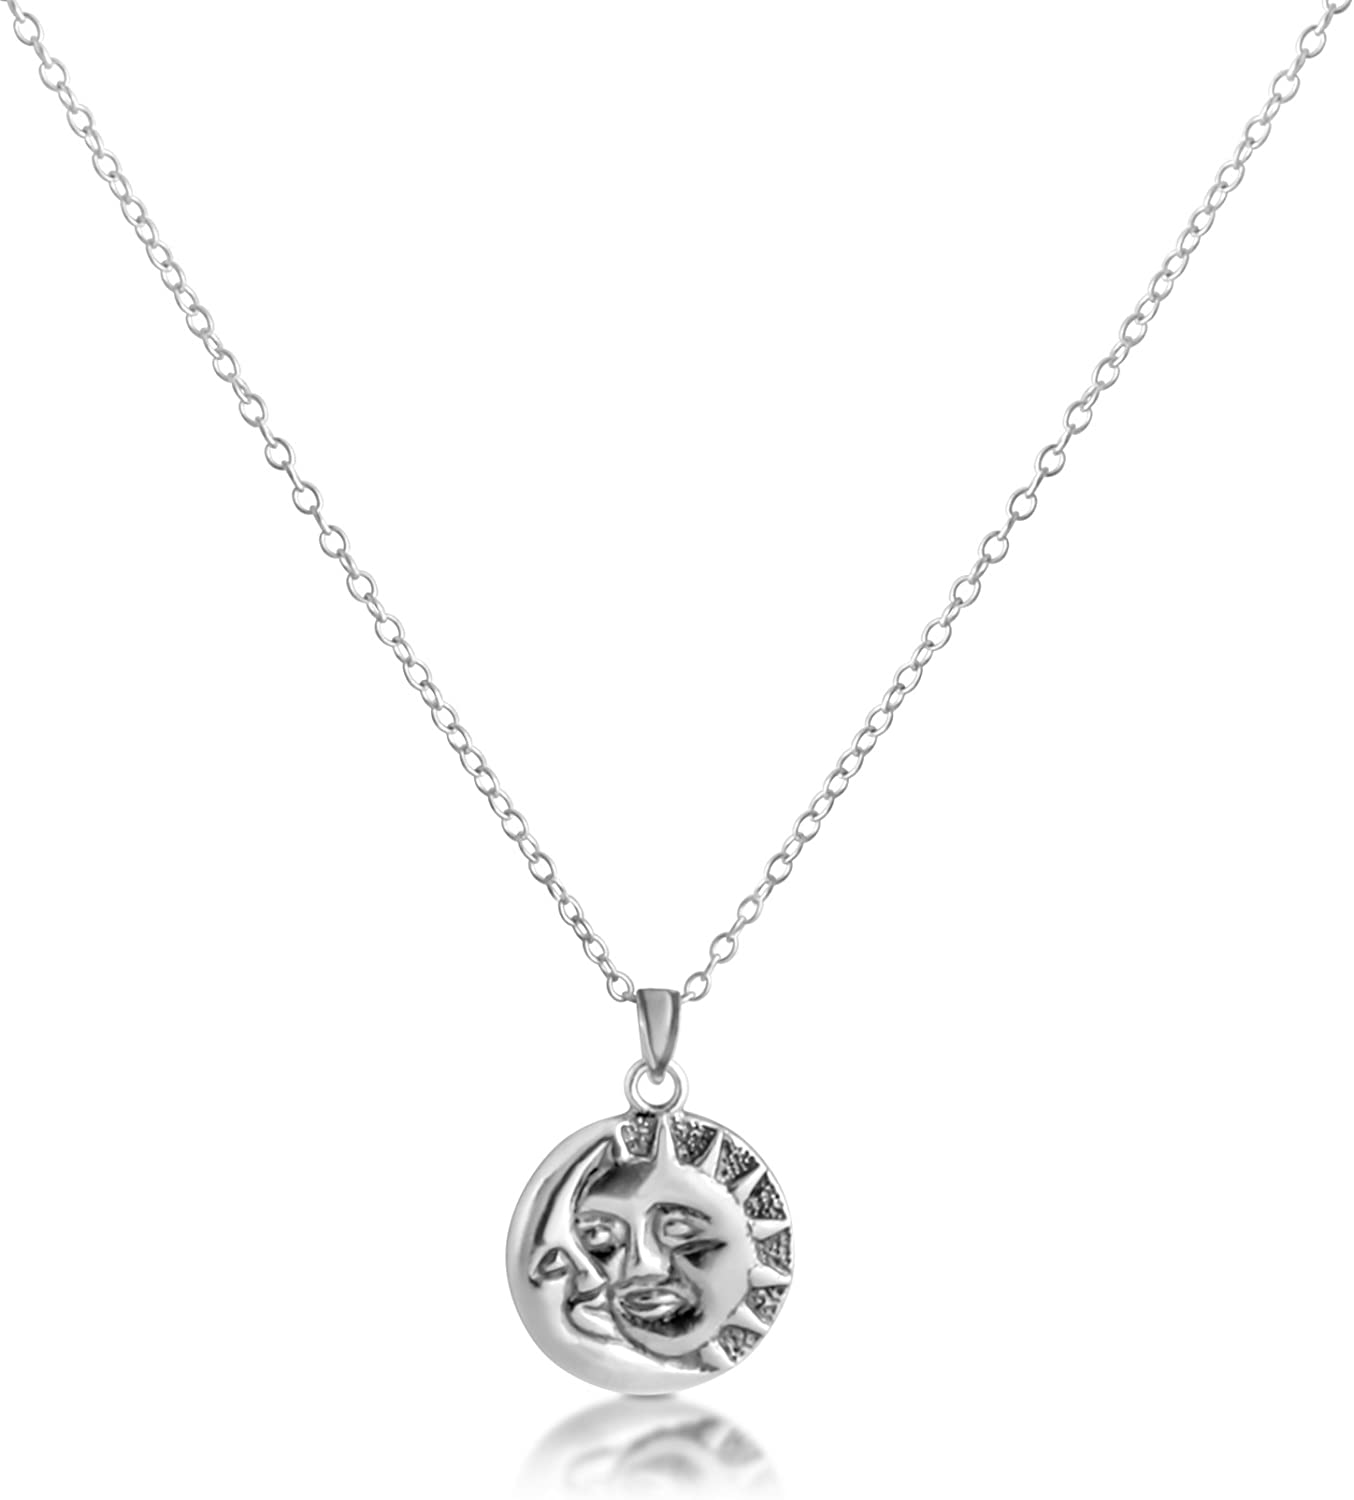 Azaggi 925 Sterling Silver Pendant Necklace Sun and Crescent Moon Faces Celestial Symbols Day /& Nigth Sky on the Earth Charm Pendant Necklace .This Unisex 925 Necklace is the Perfect Jewelry Gift